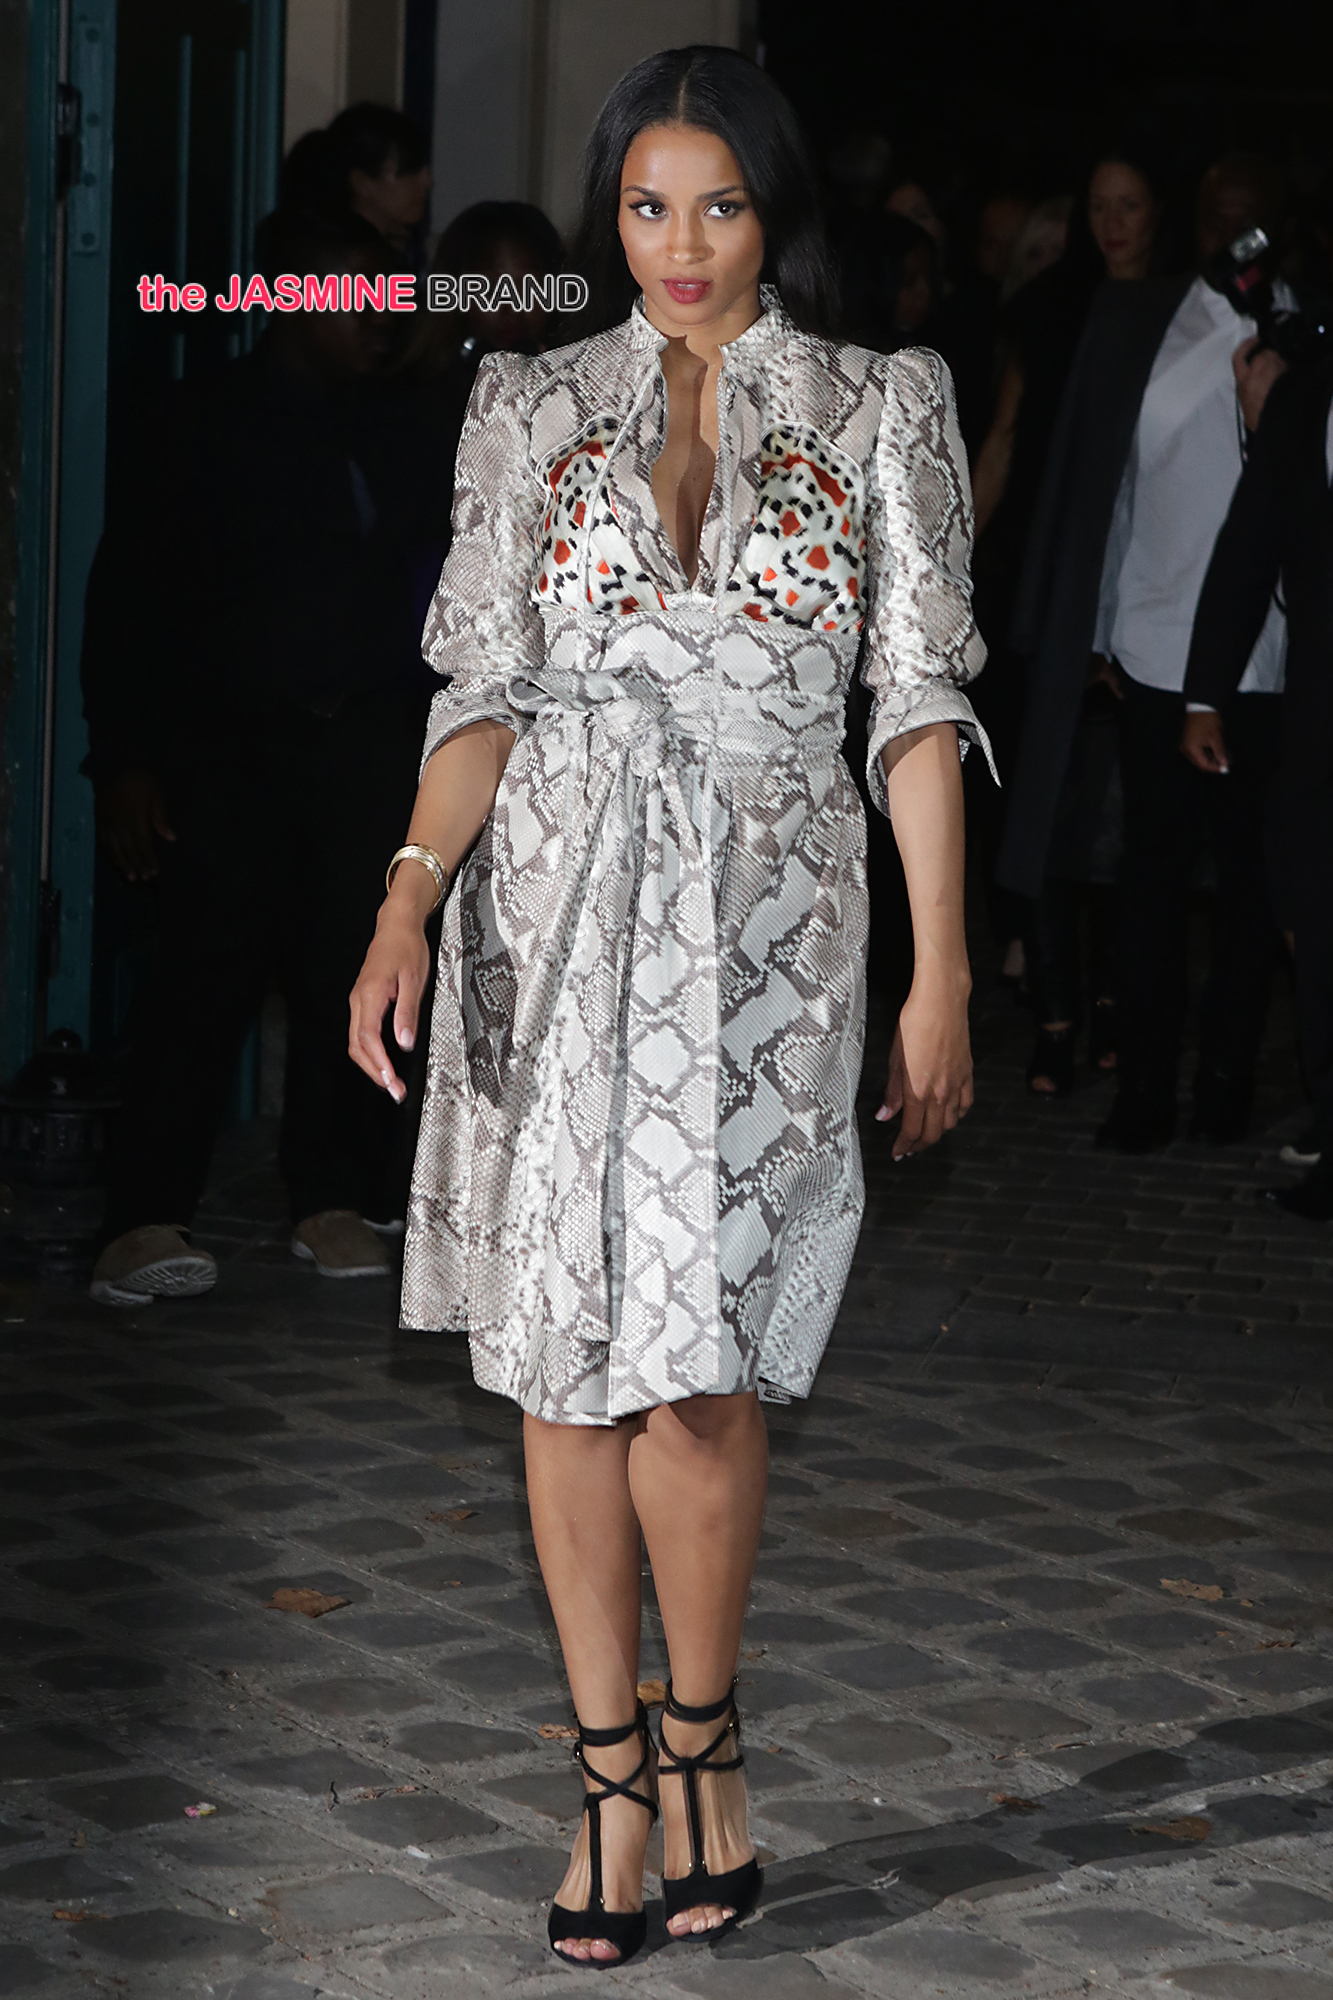 Ciara seen at the Givenchy S/S 2015 show in Paris